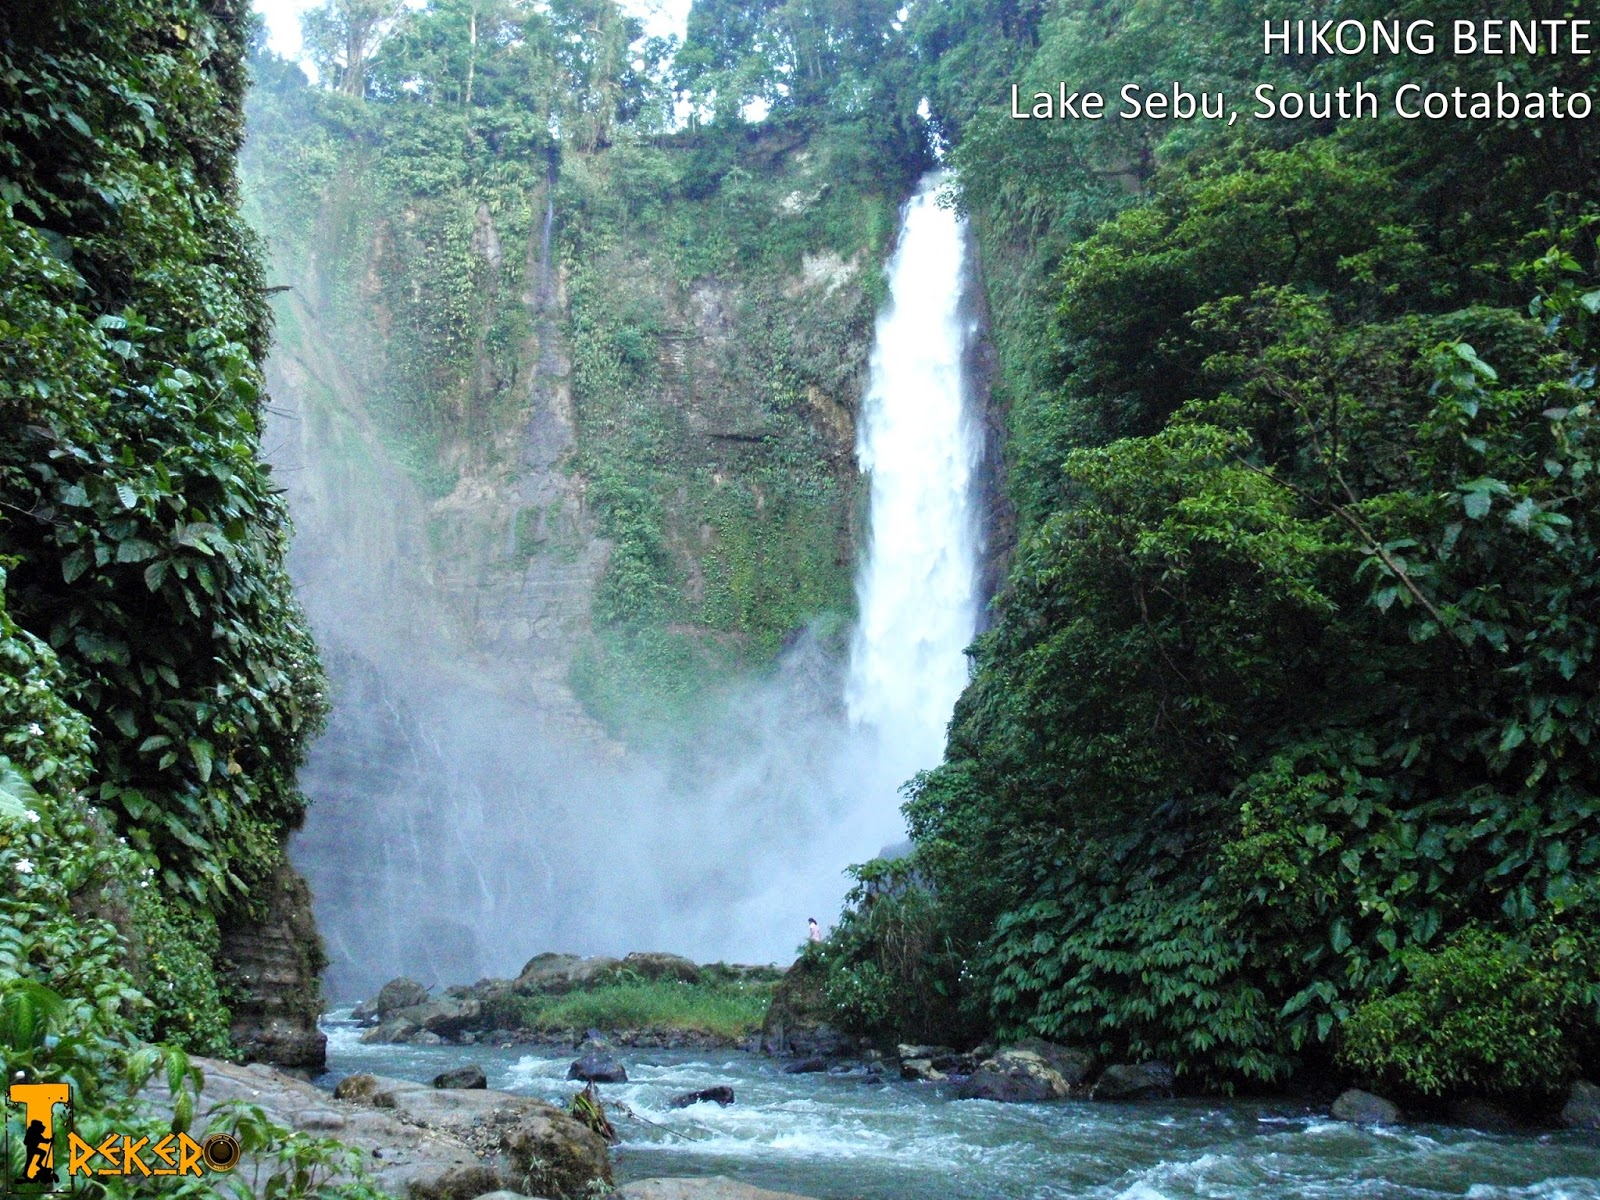 Trekero the 7 falls of lake sebu the complete list falls 1 hikong alo meaning passage and 2 hikong bente meaning immeasurable are the most accessible 2 being the highest and perhaps most beautiful thecheapjerseys Gallery